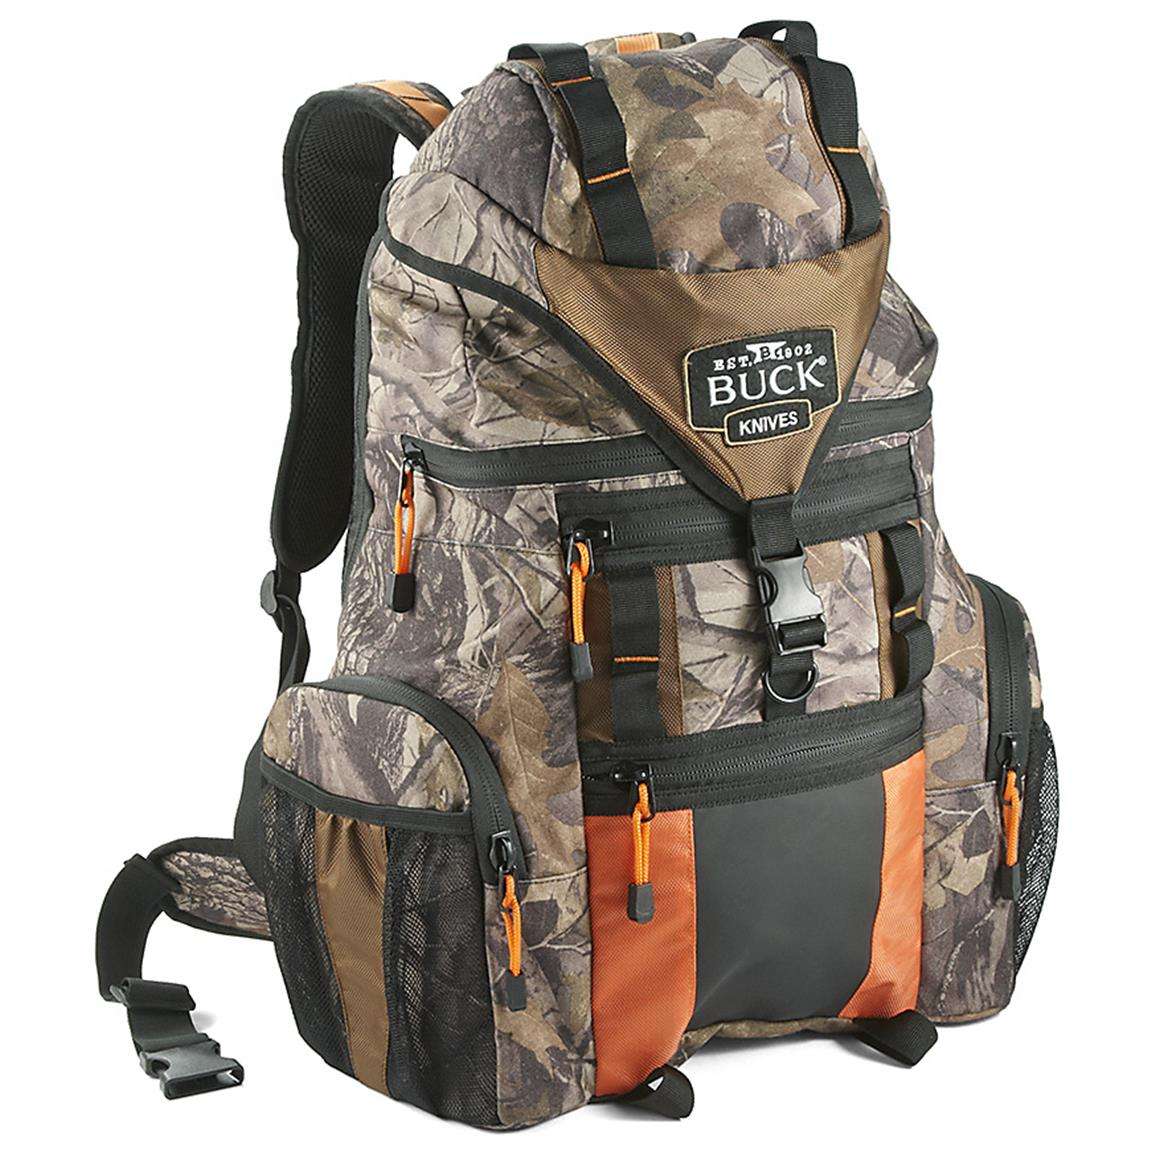 Buck Mule Day Pack